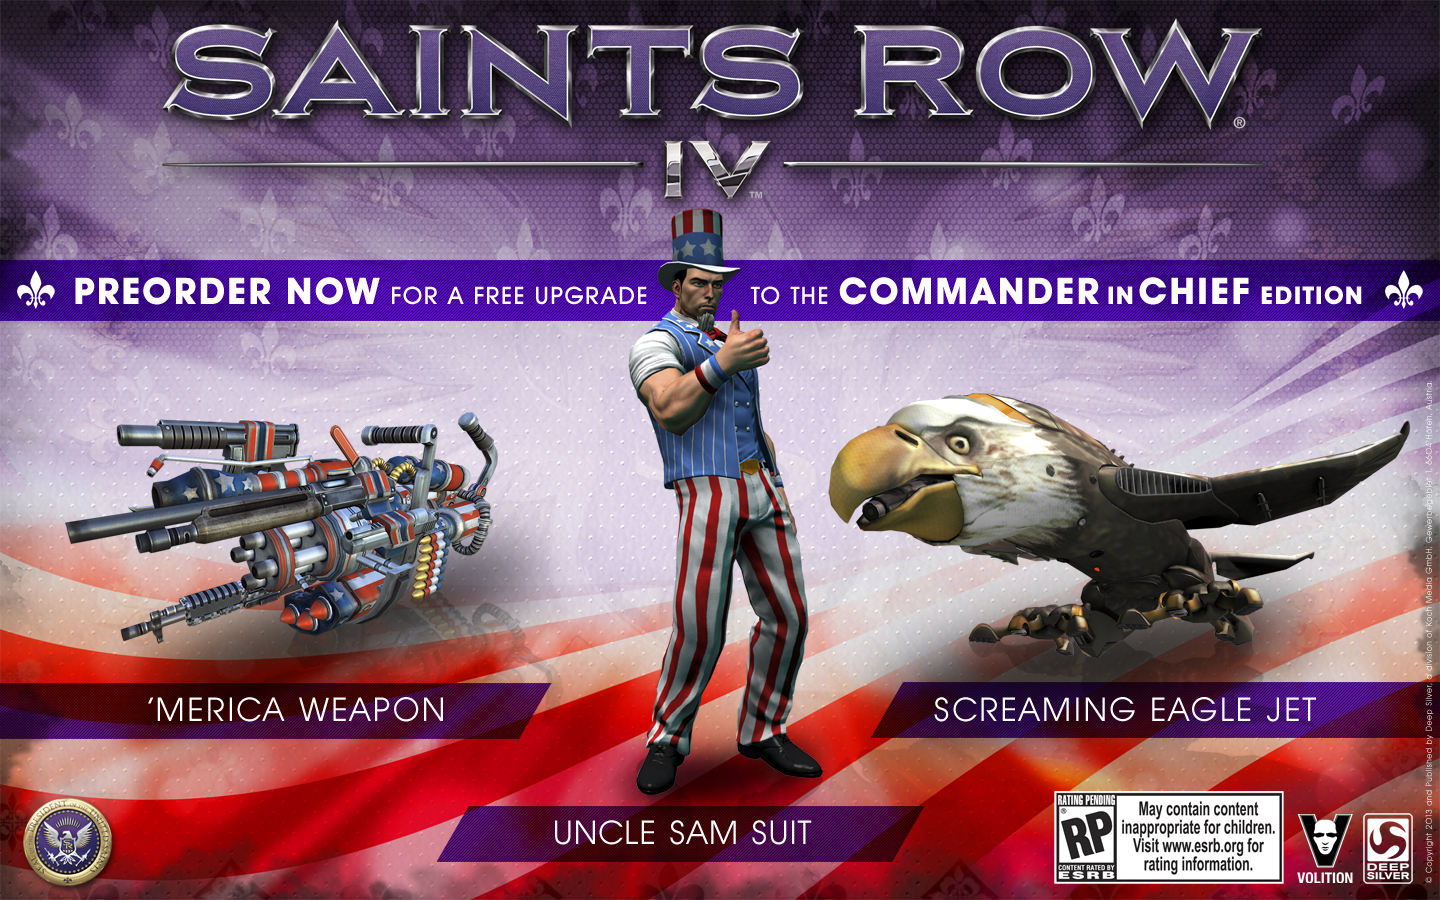 'Saints Row IV' Commander in Chief Edition announced, is awesome